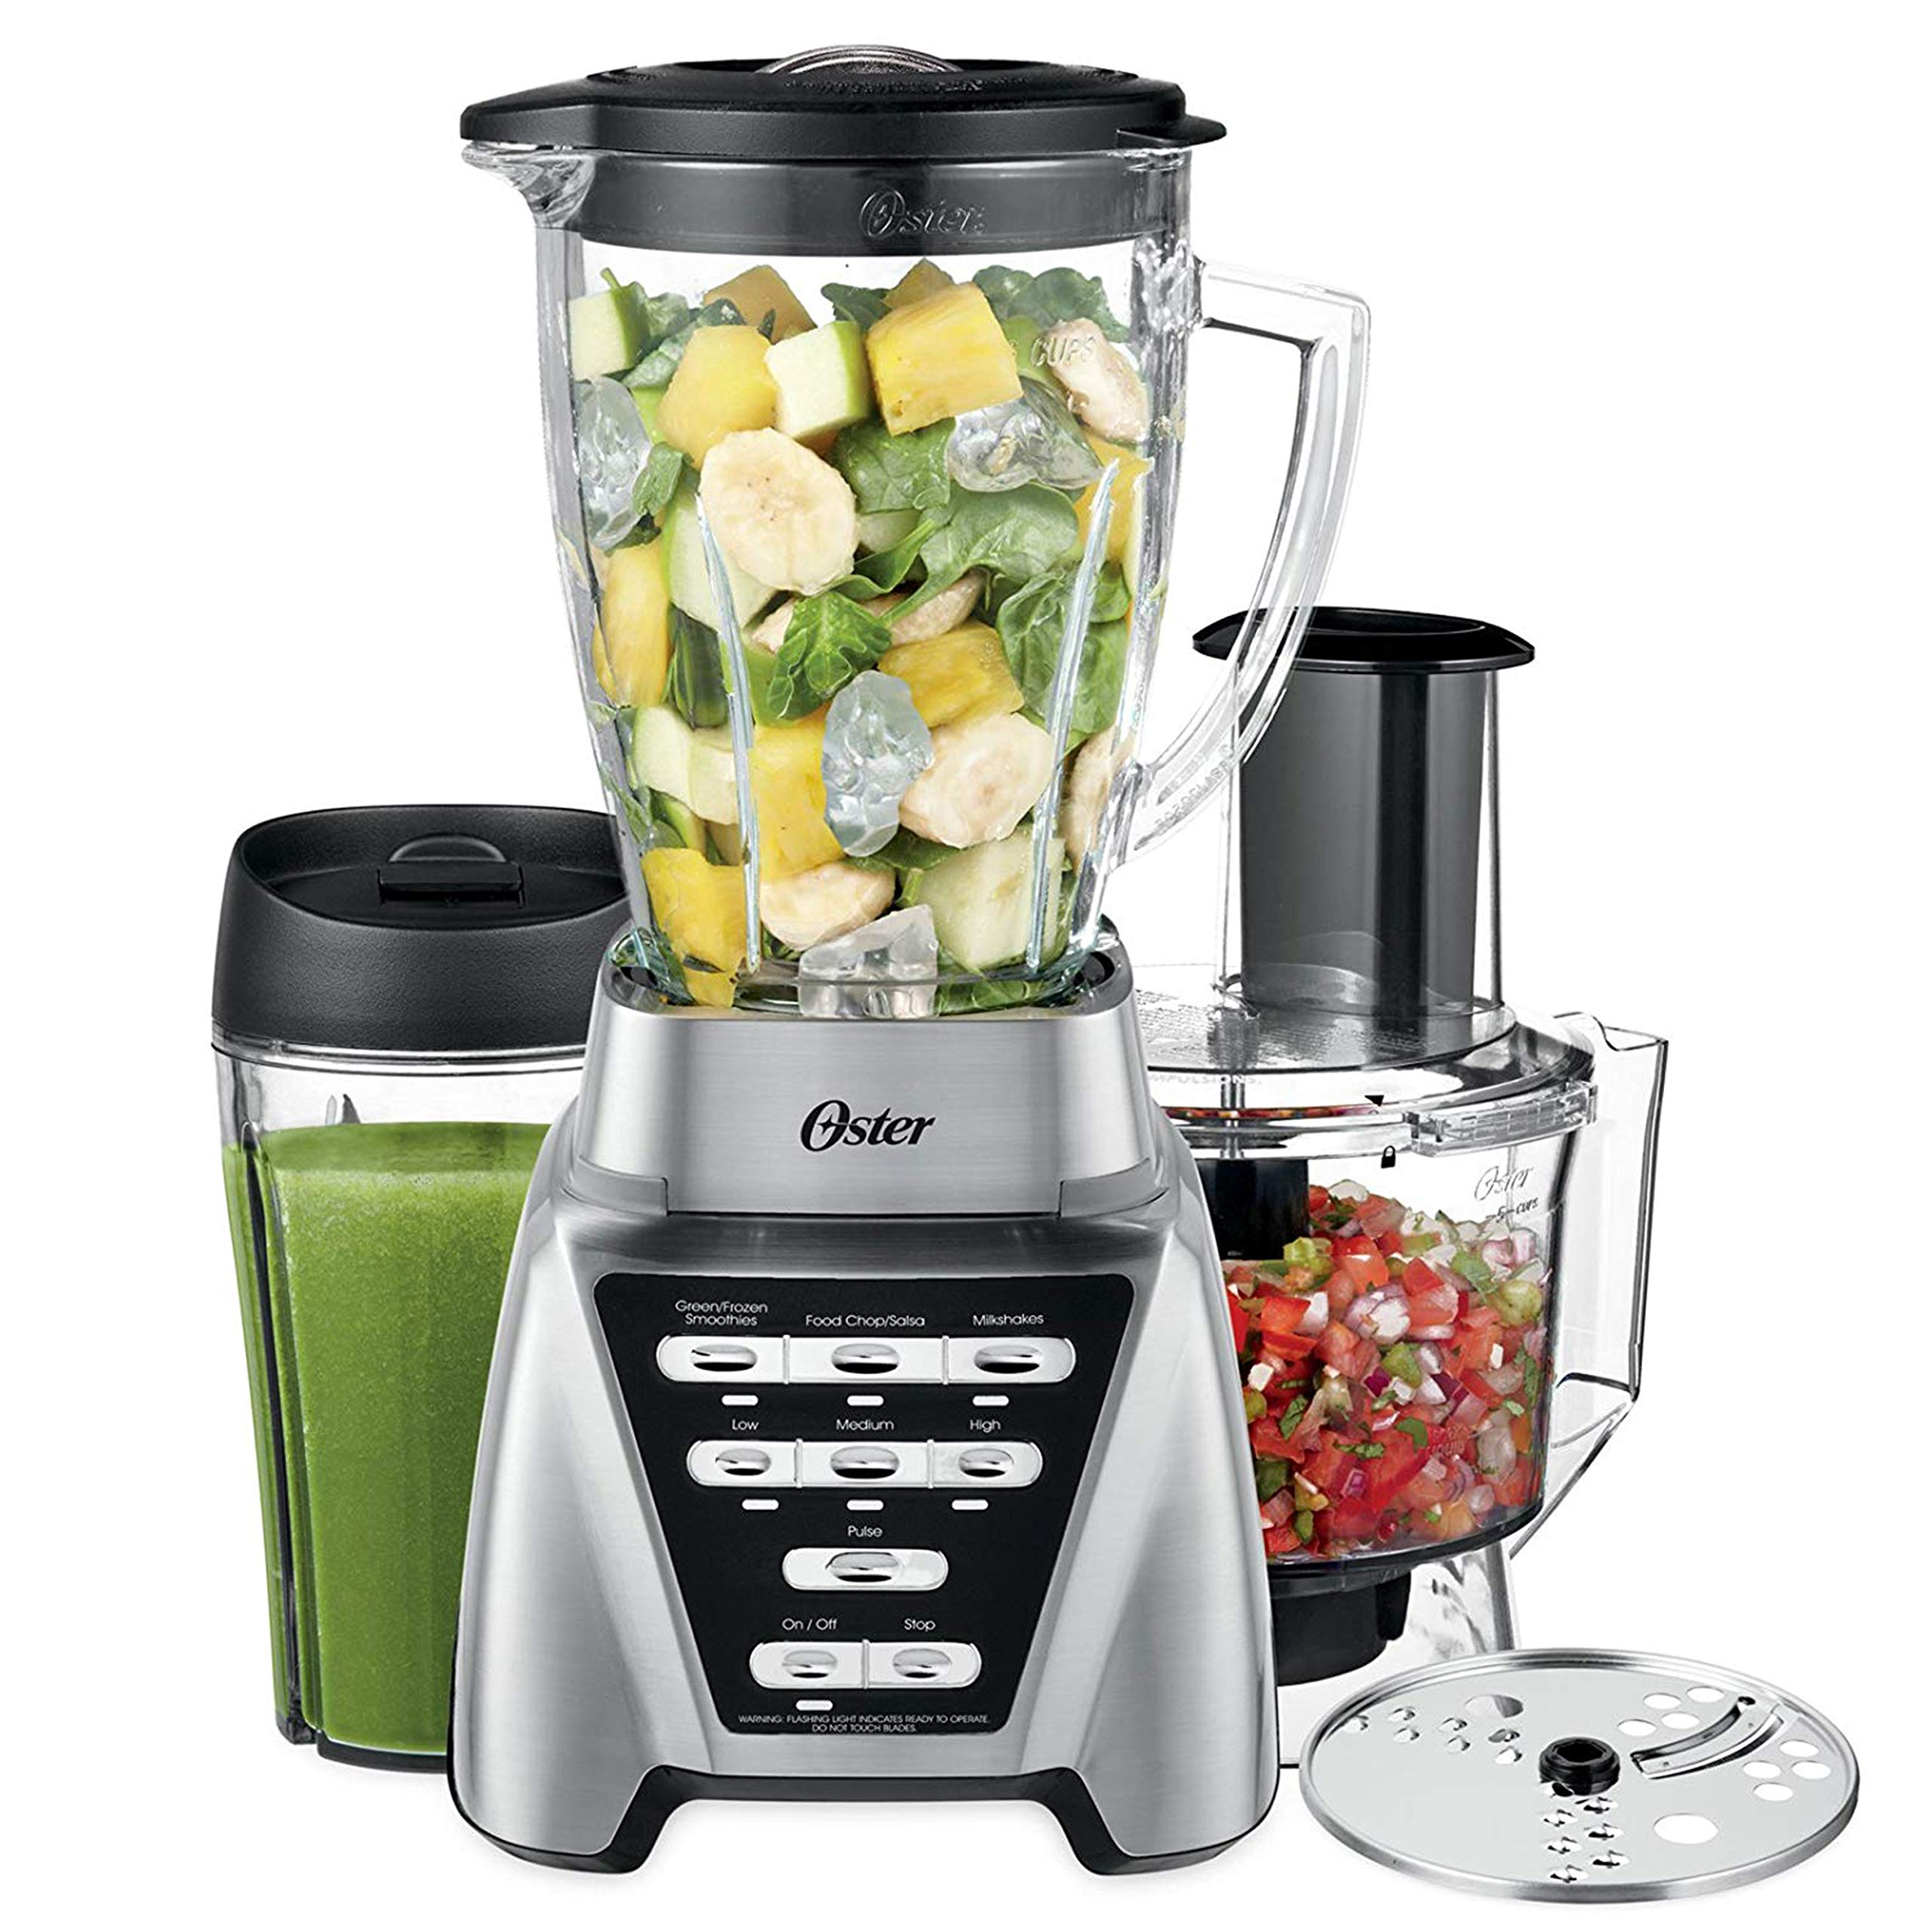 Oster Pro 1200 Blender with Glass Jar plus Smoothie Cup & Food Processor Attachment, Brushed Nickel by Oster (Image #1)